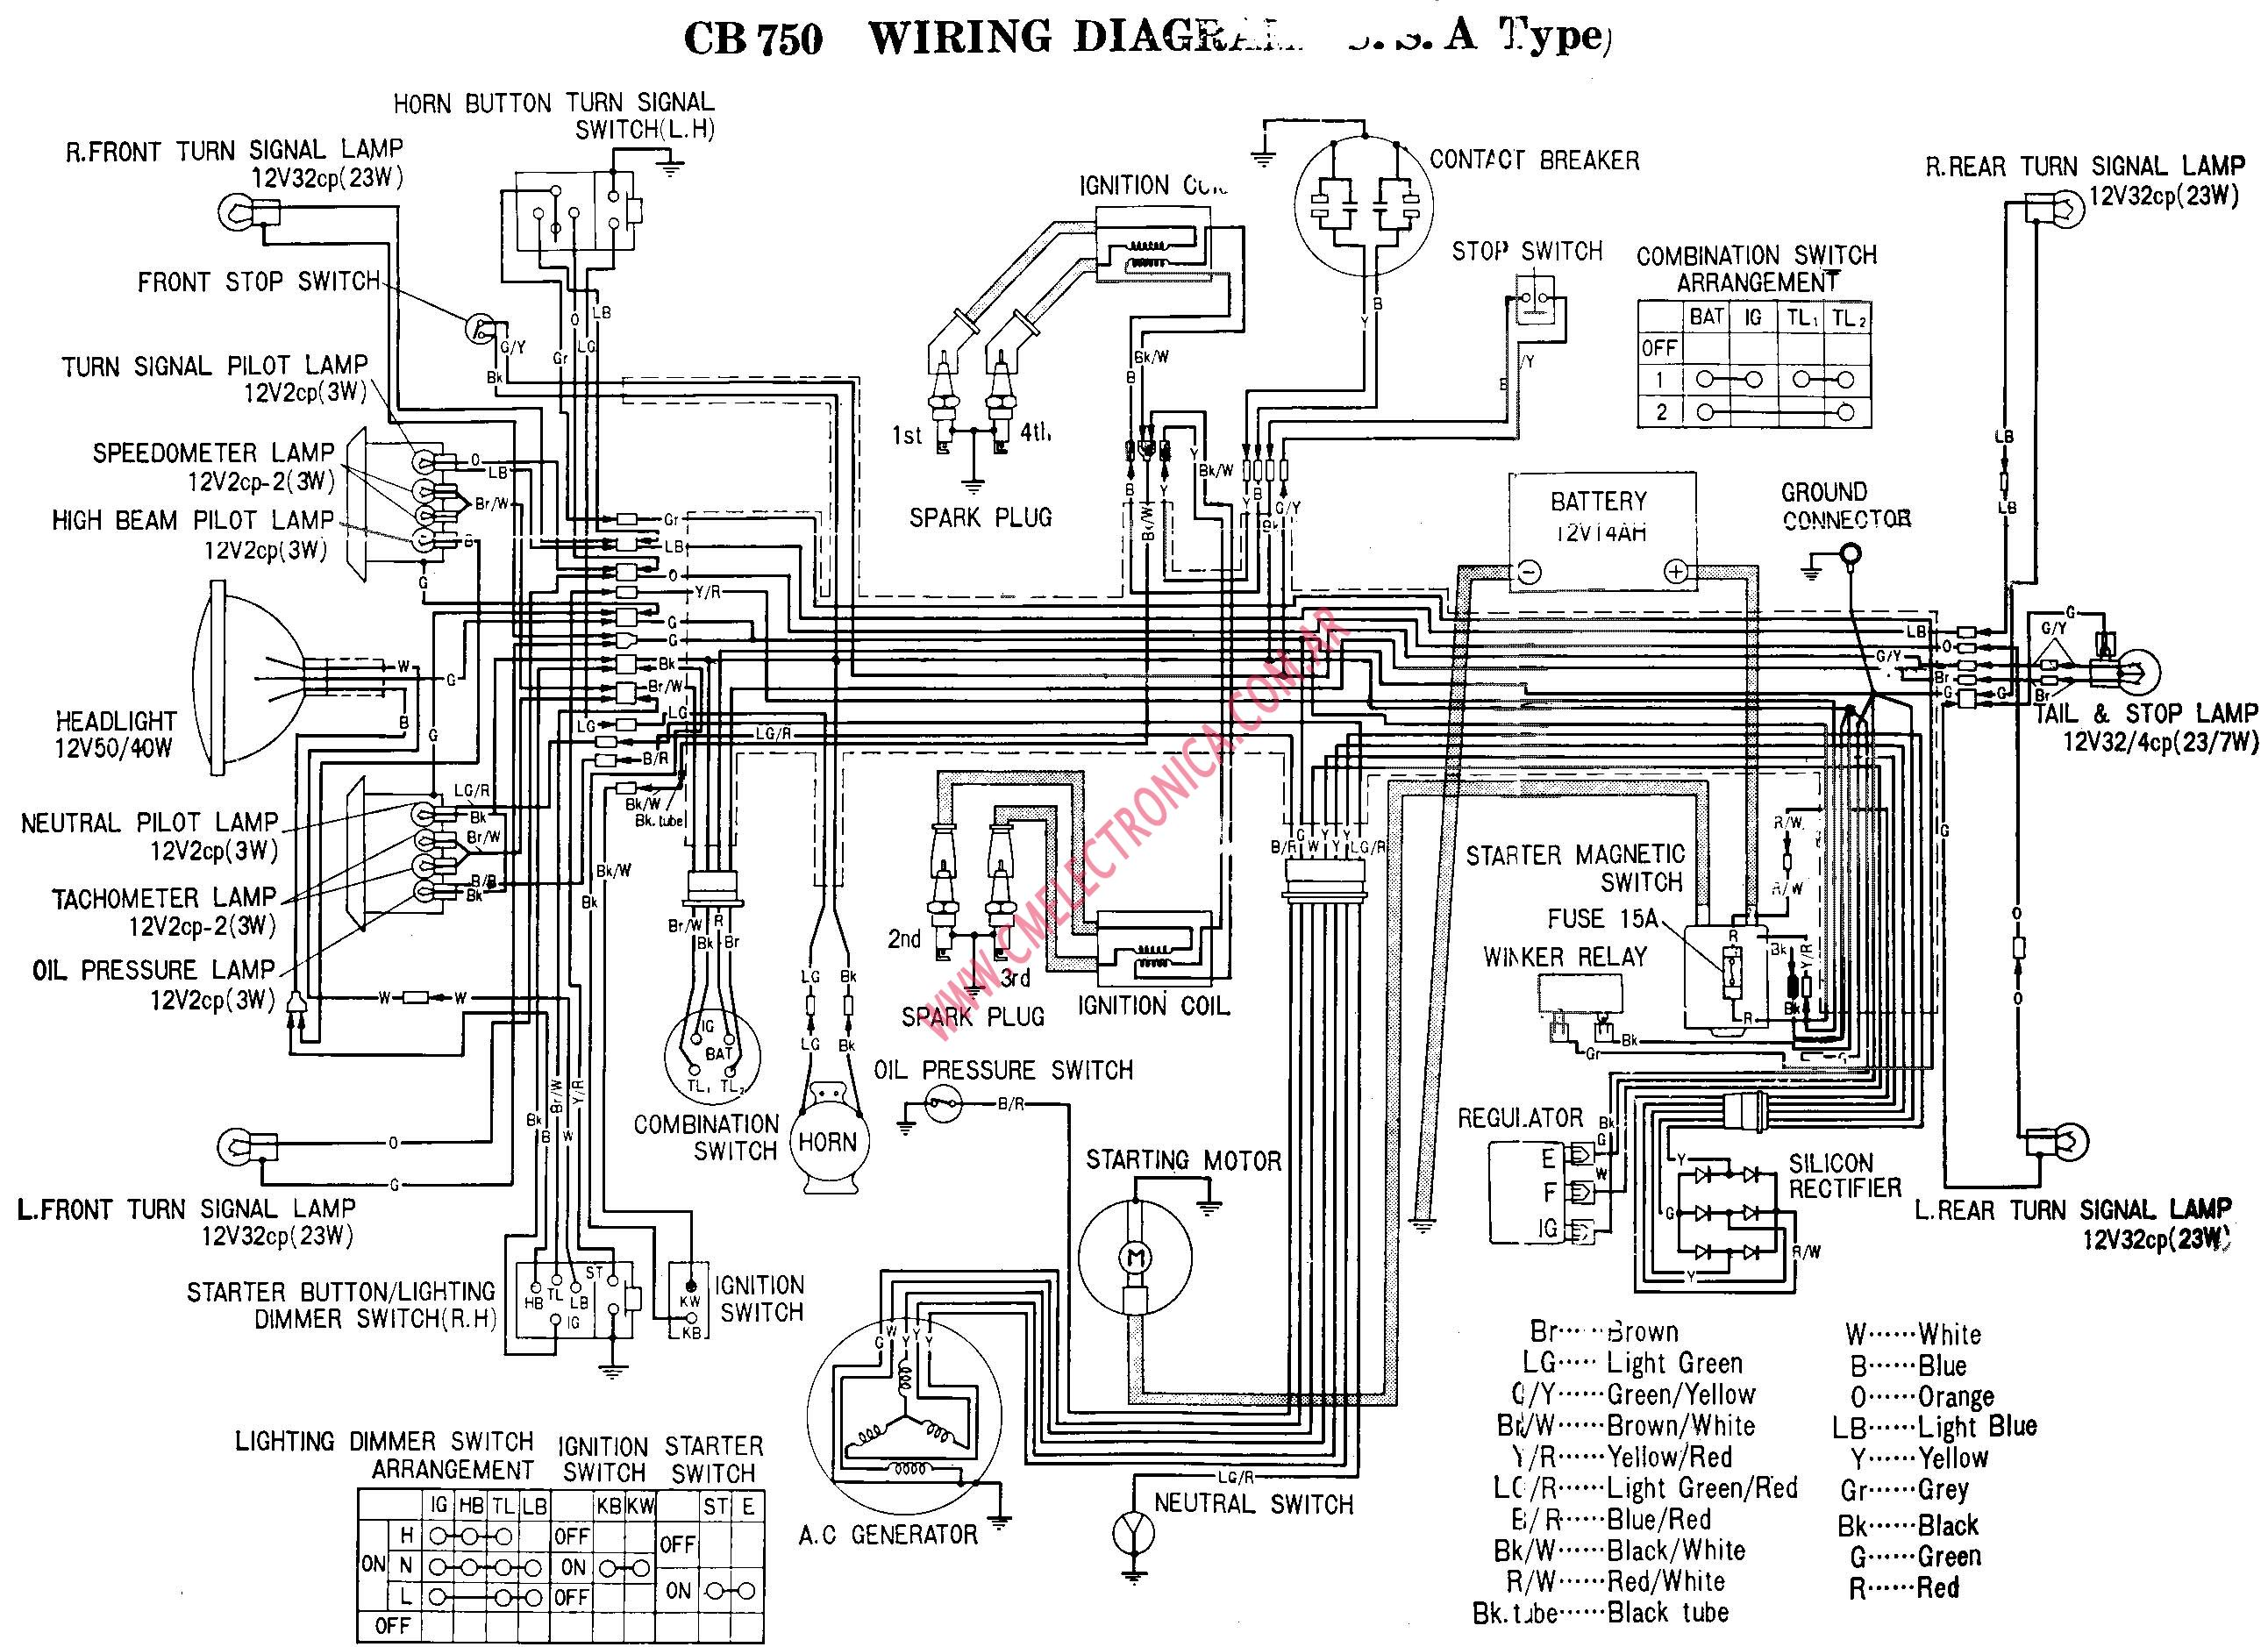 Honda Unicorn 150 Wiring Diagram Diagram Base Website Wiring Diagram -  FEMALEREPRODUCTIVESYSTEMDIAGRAM.DINDIBOCCADASSE.ITDiagram Base Website Full Edition - dindiboccadasse.it